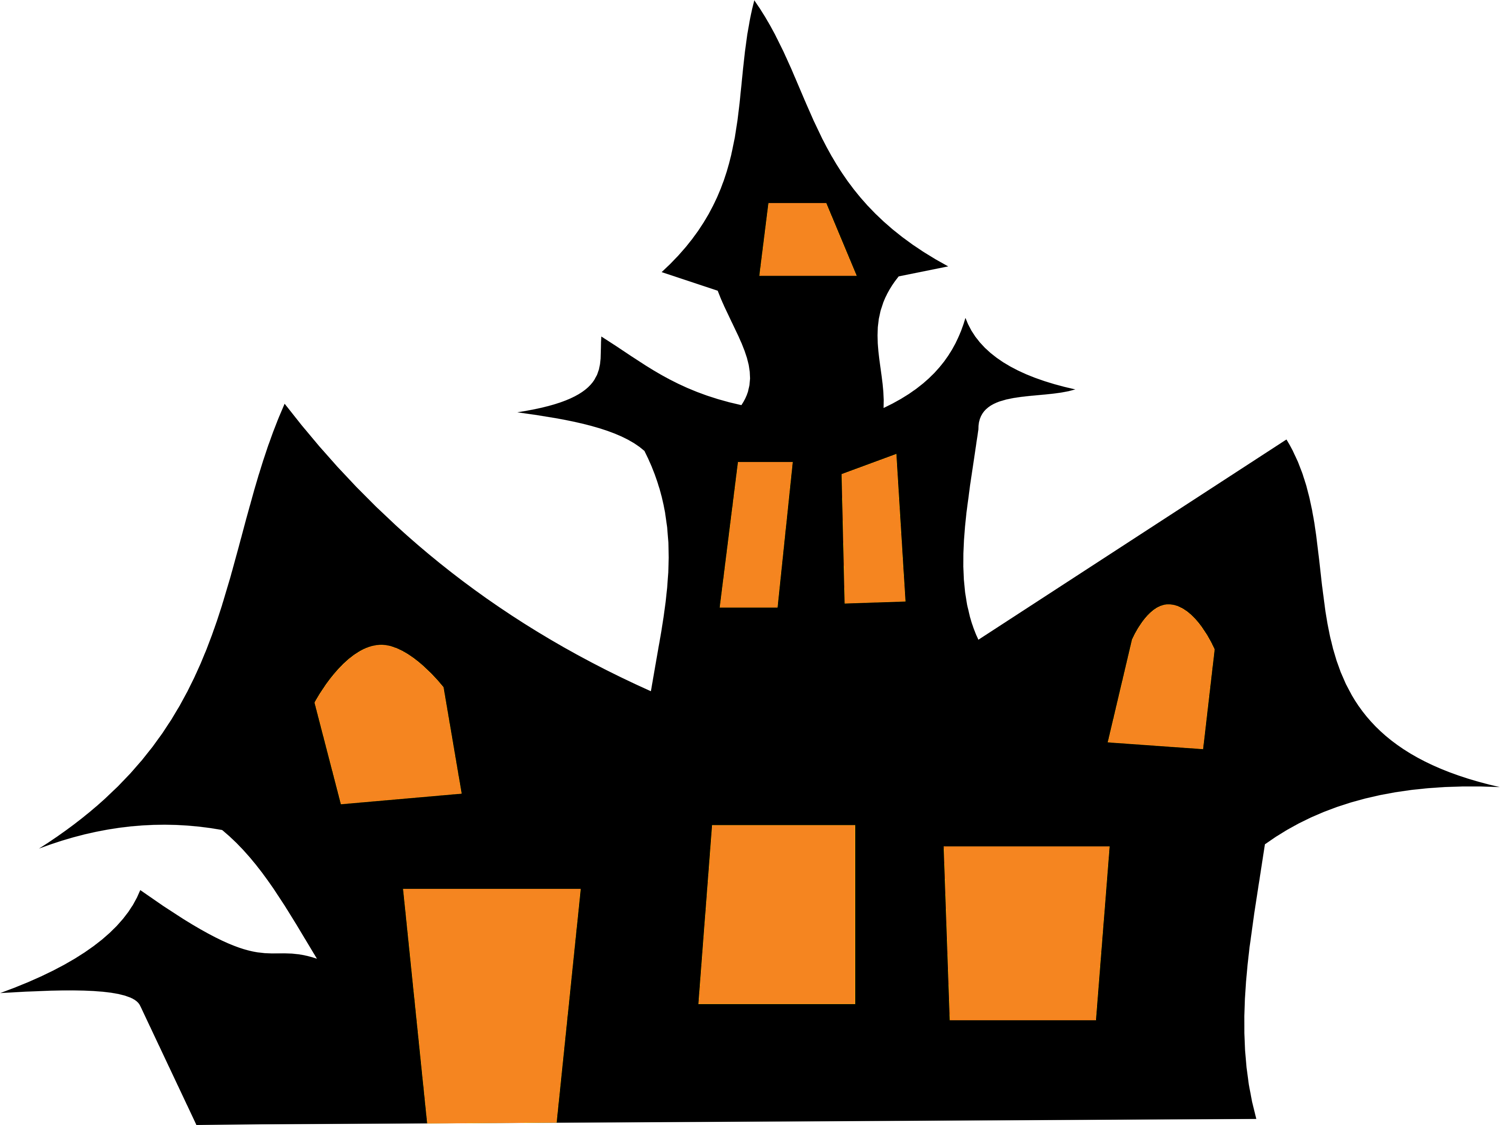 Haunted House Clip Art - Cliparts.co